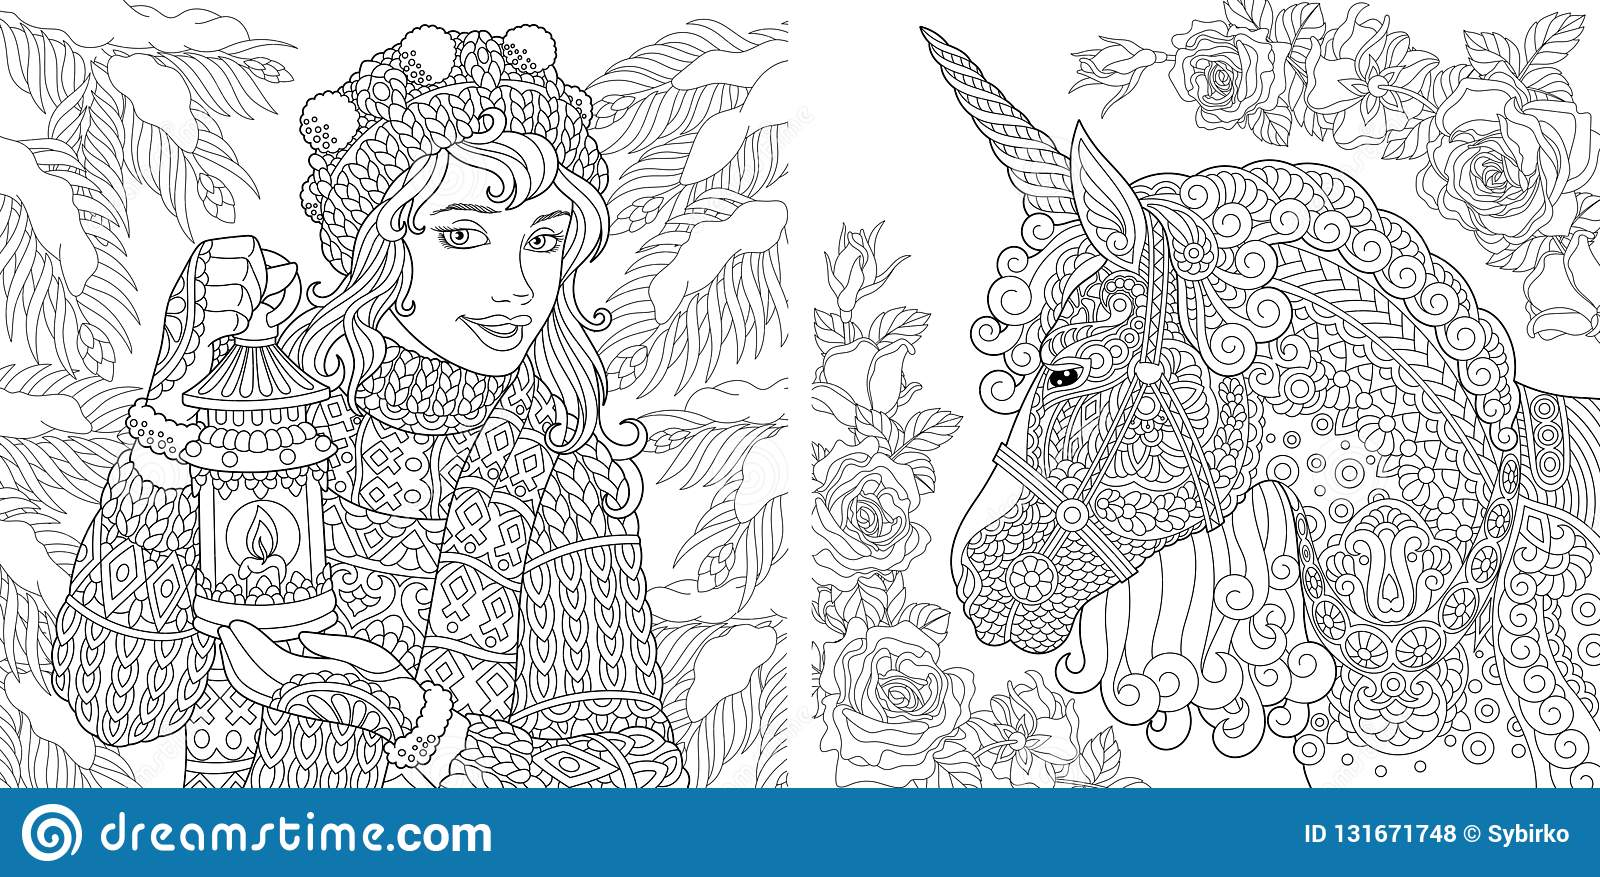 Fantasy Coloring Pages. Coloring Book For Adults. Colouring ...